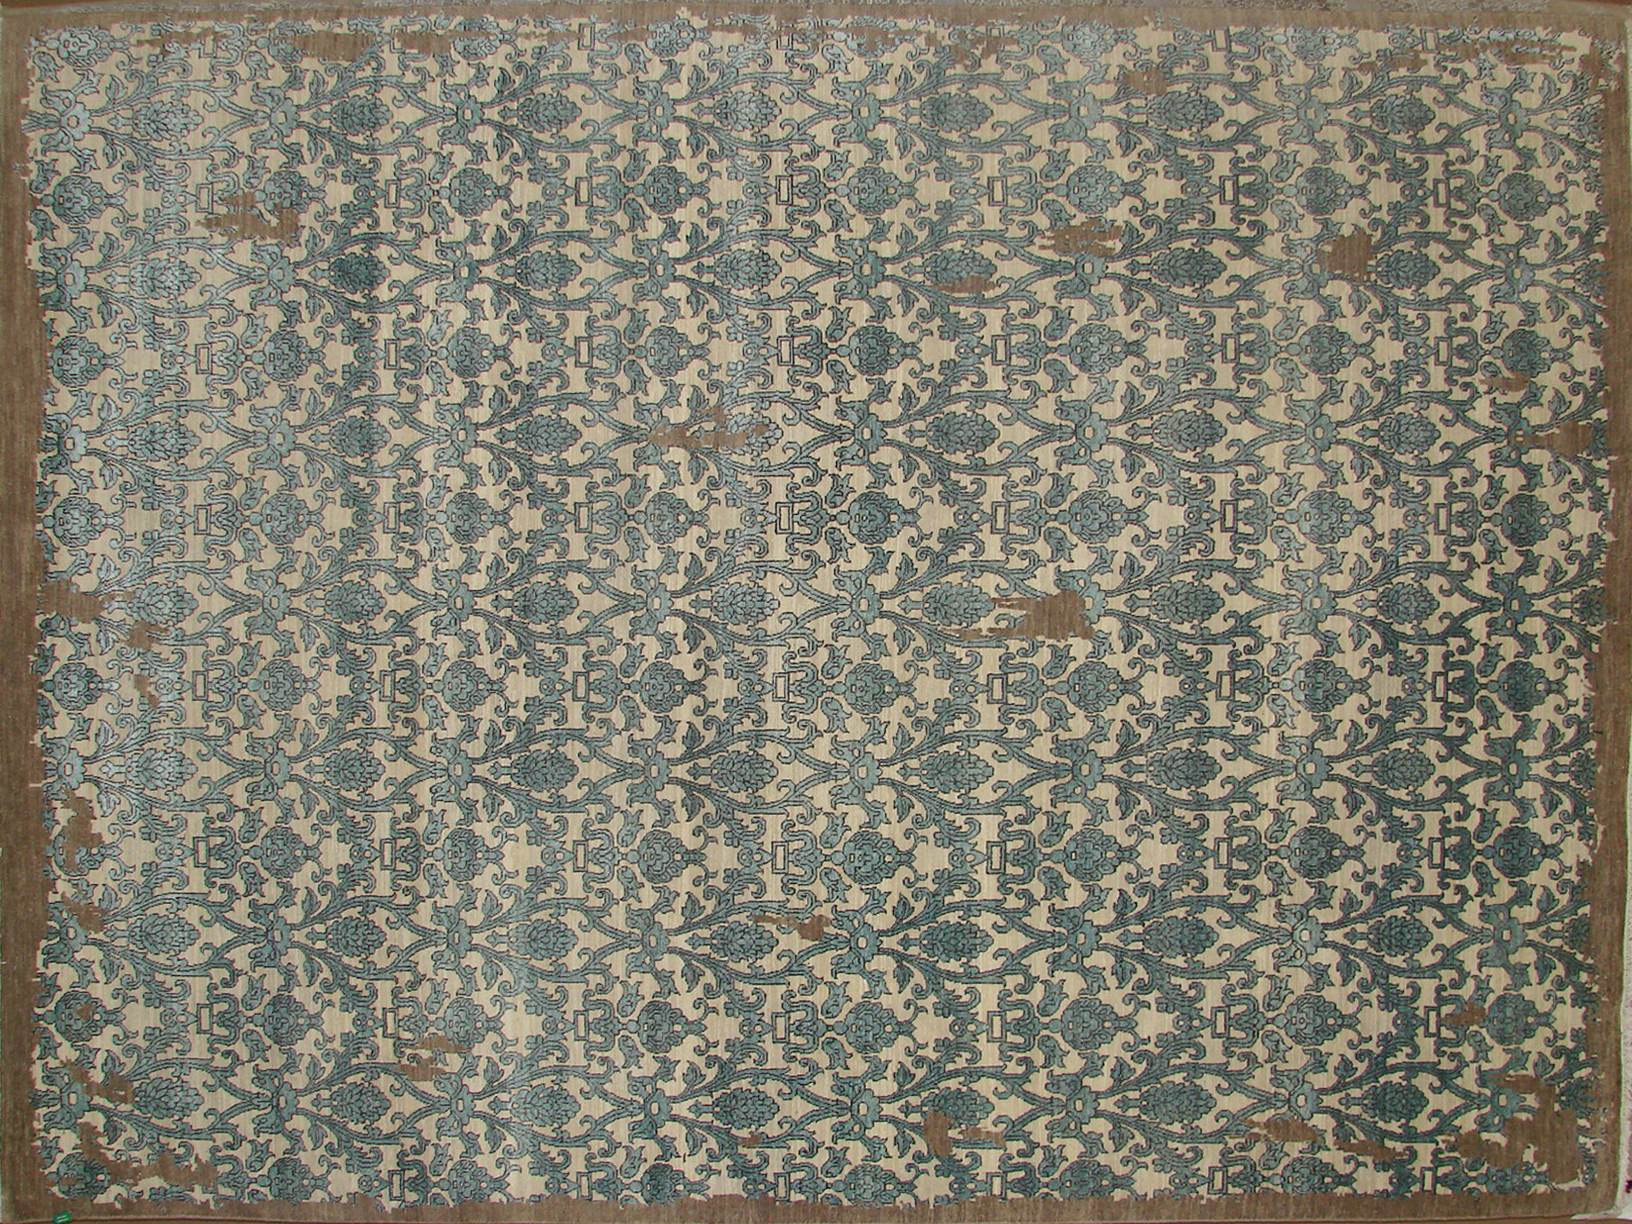 9x12 Contemporary Hand Knotted Wool Area Rug - MR19135